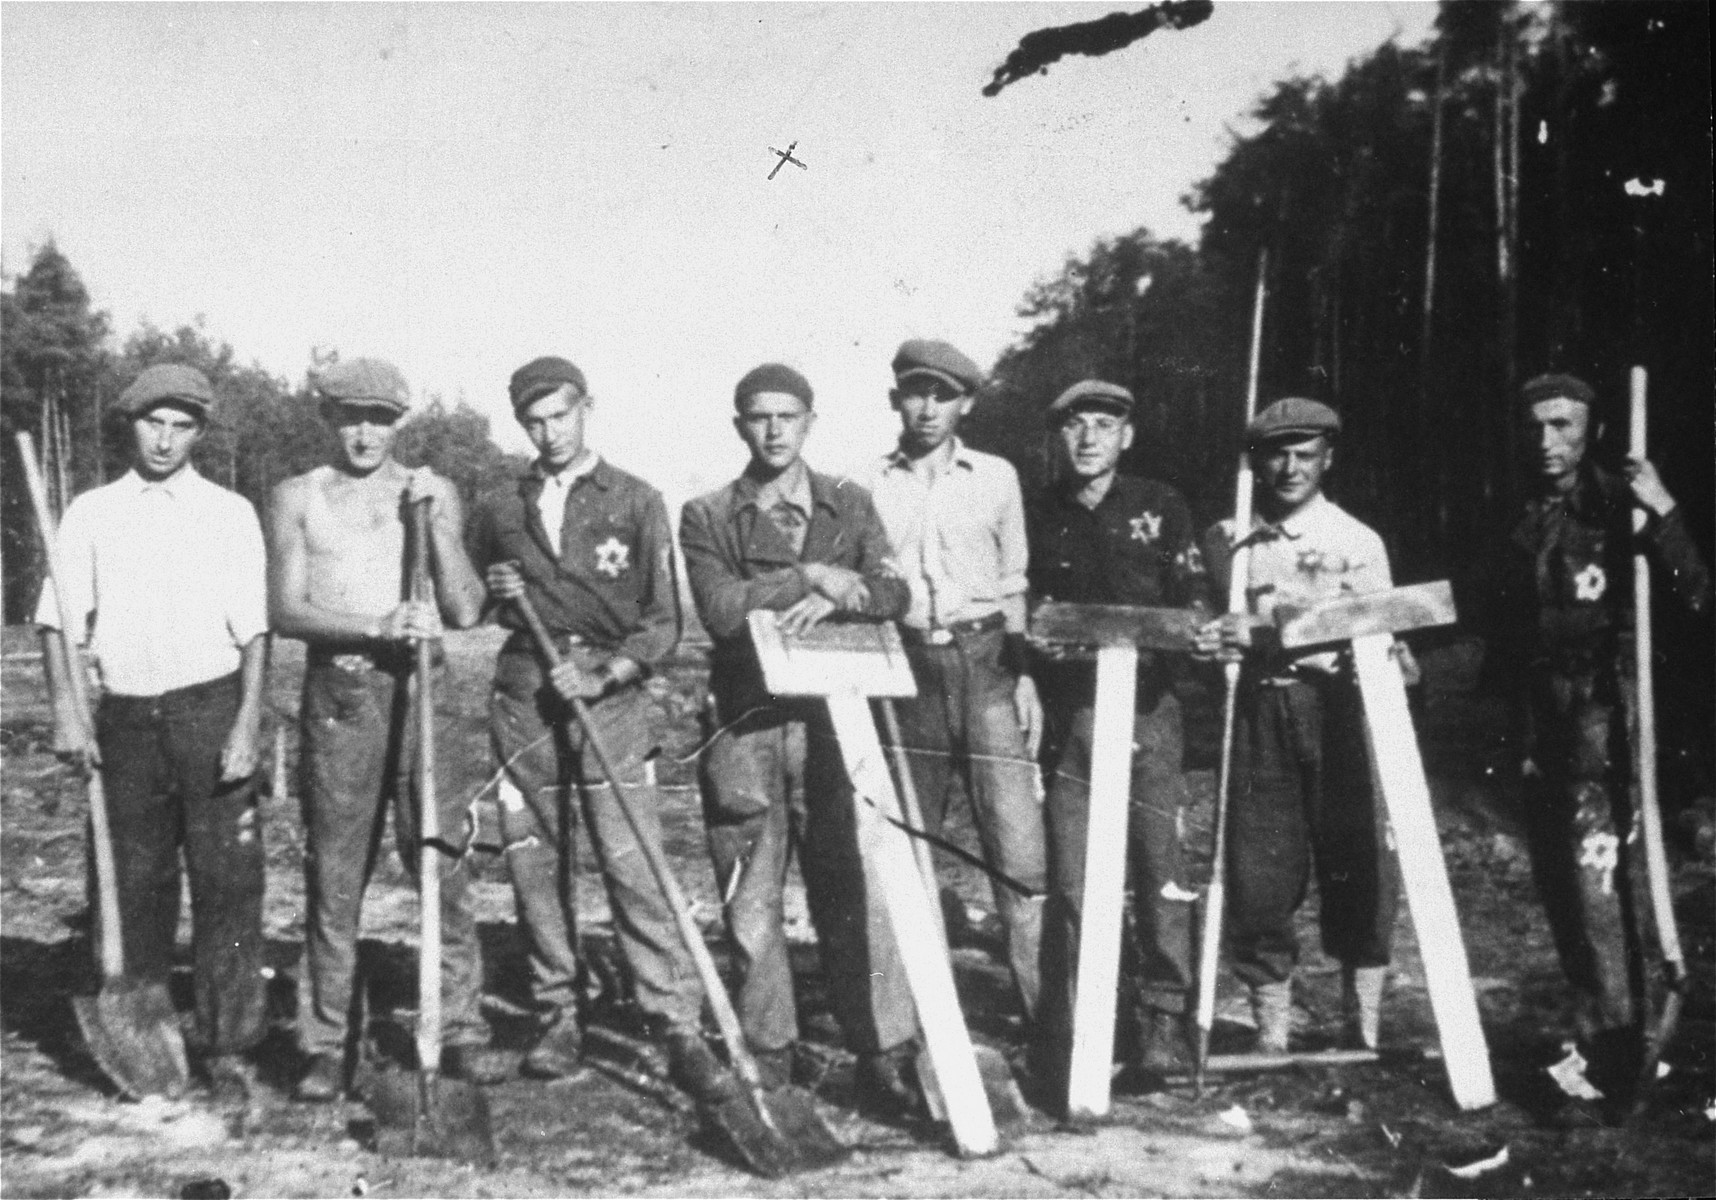 Group portrait Jewish forced laborers who worked on the construction of the autobahn in Geppersdorf, Germany.    Among those pictured is Abram Stone (fourth from the left).